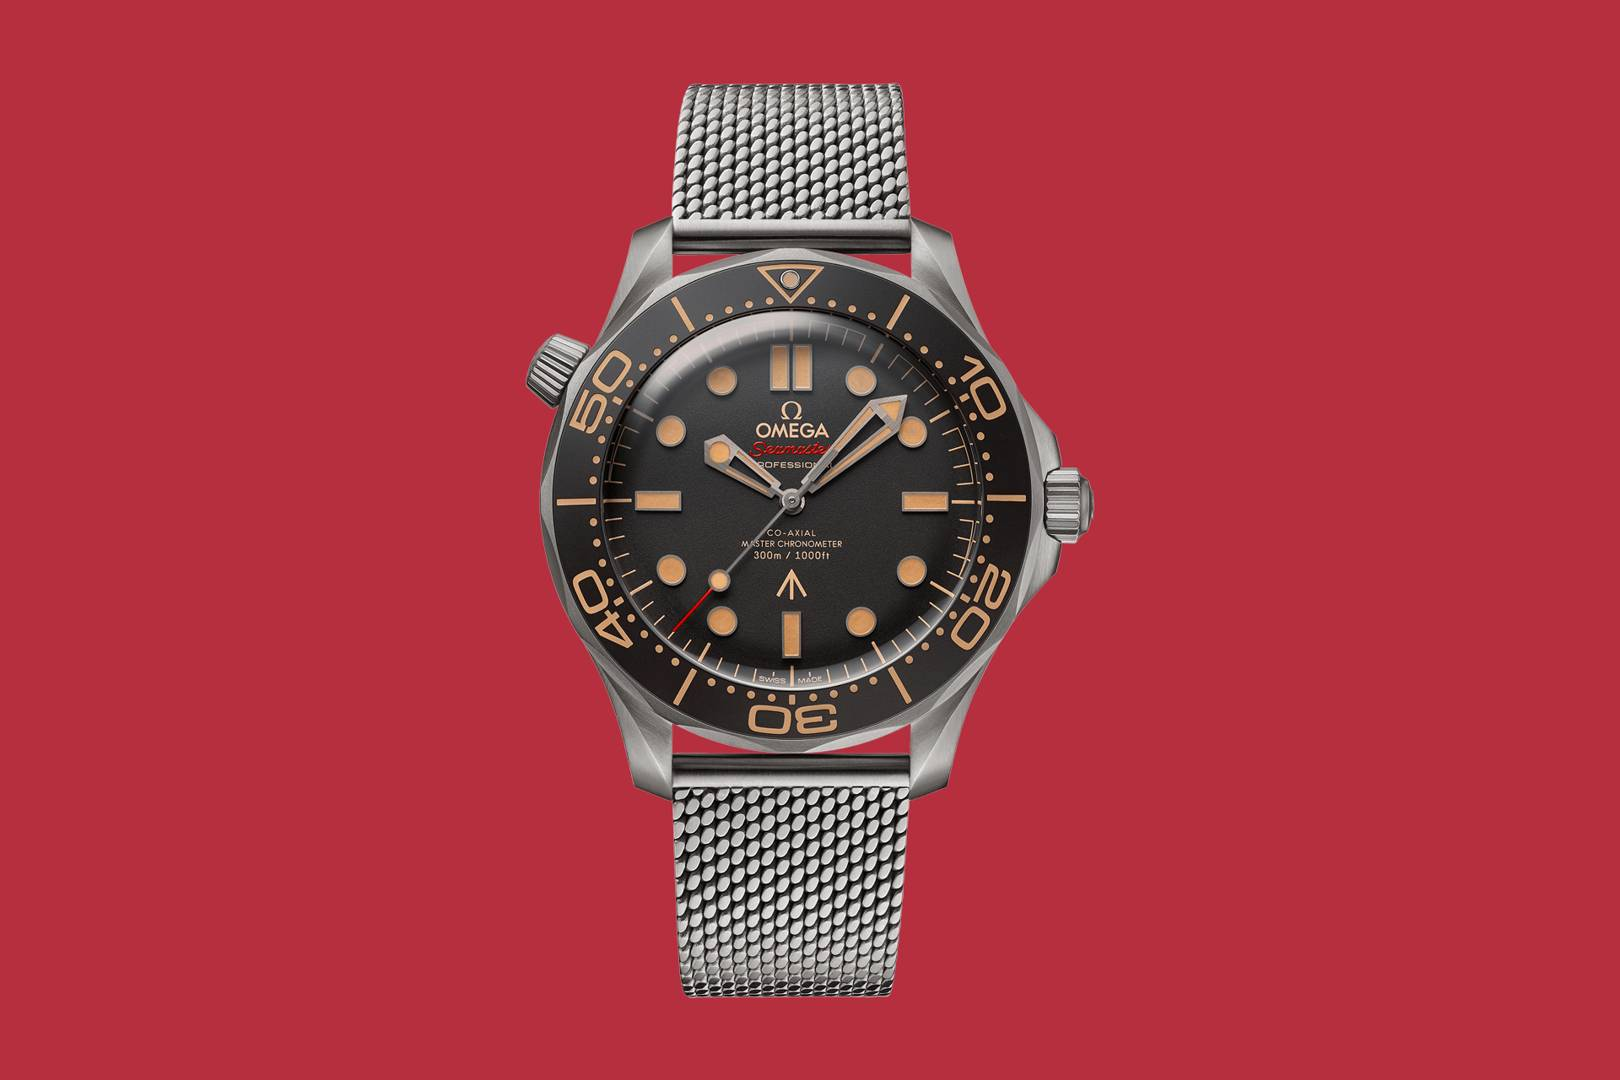 The most impressive part of Omega's new Bond watch is the strap